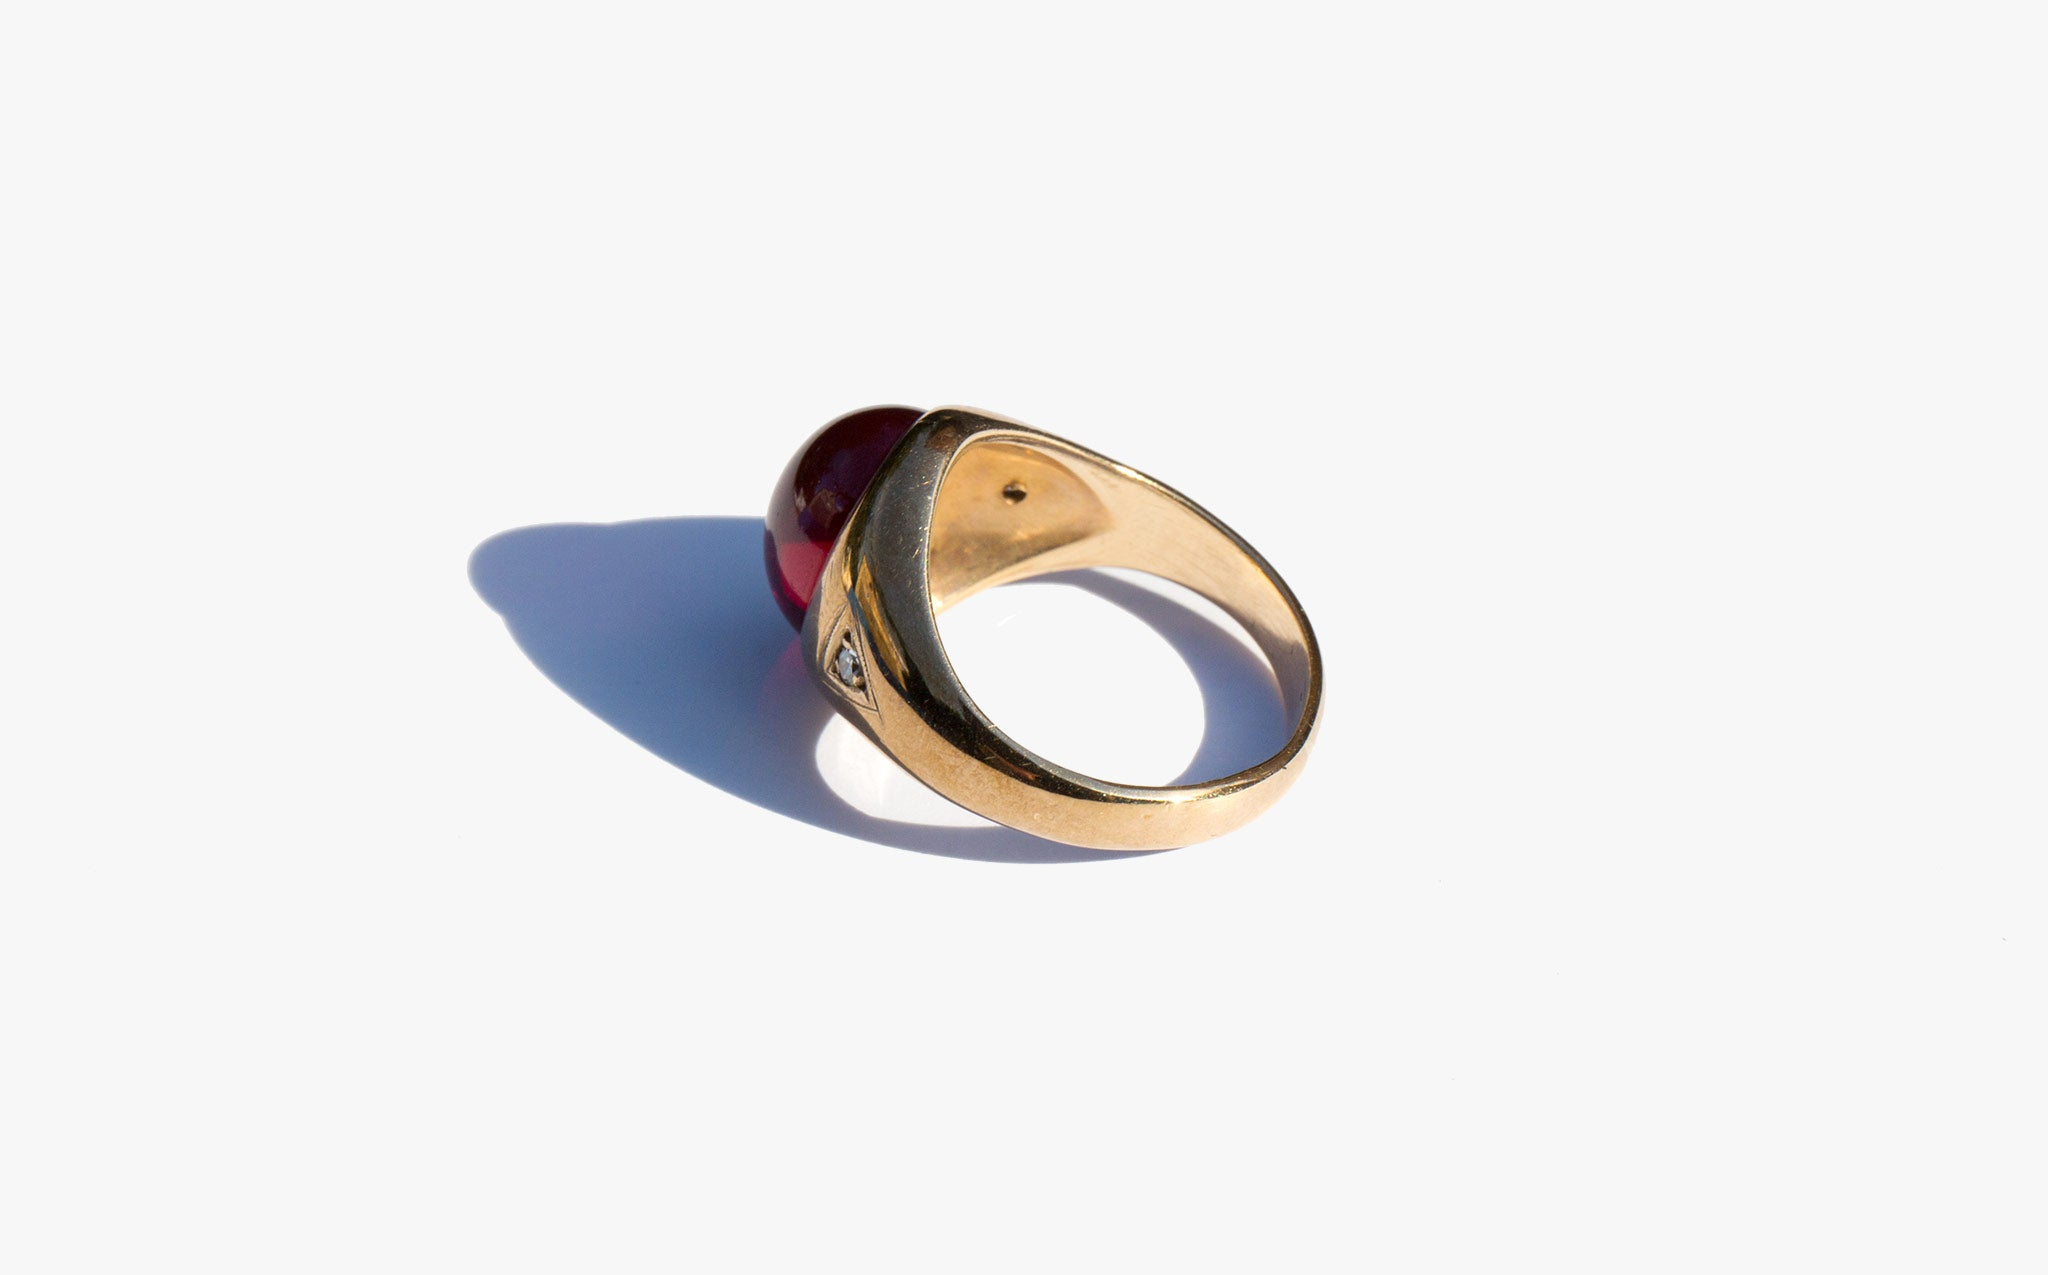 Fire Signet Ring